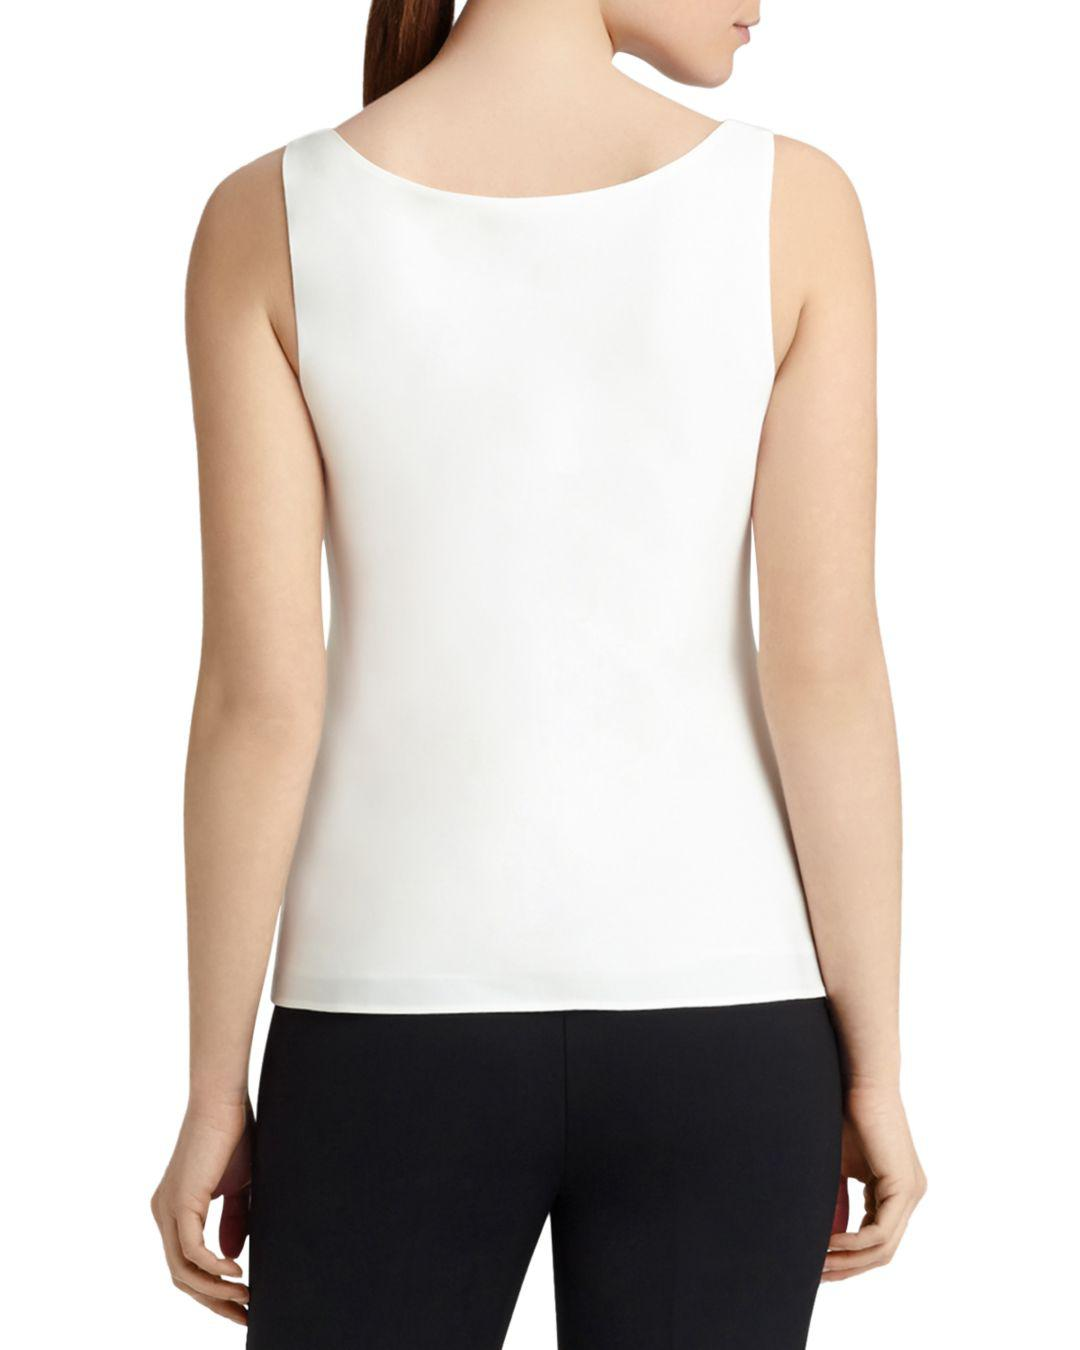 d57a368caa70f Lyst - Lafayette 148 New York Silk Tank in White - Save 16%